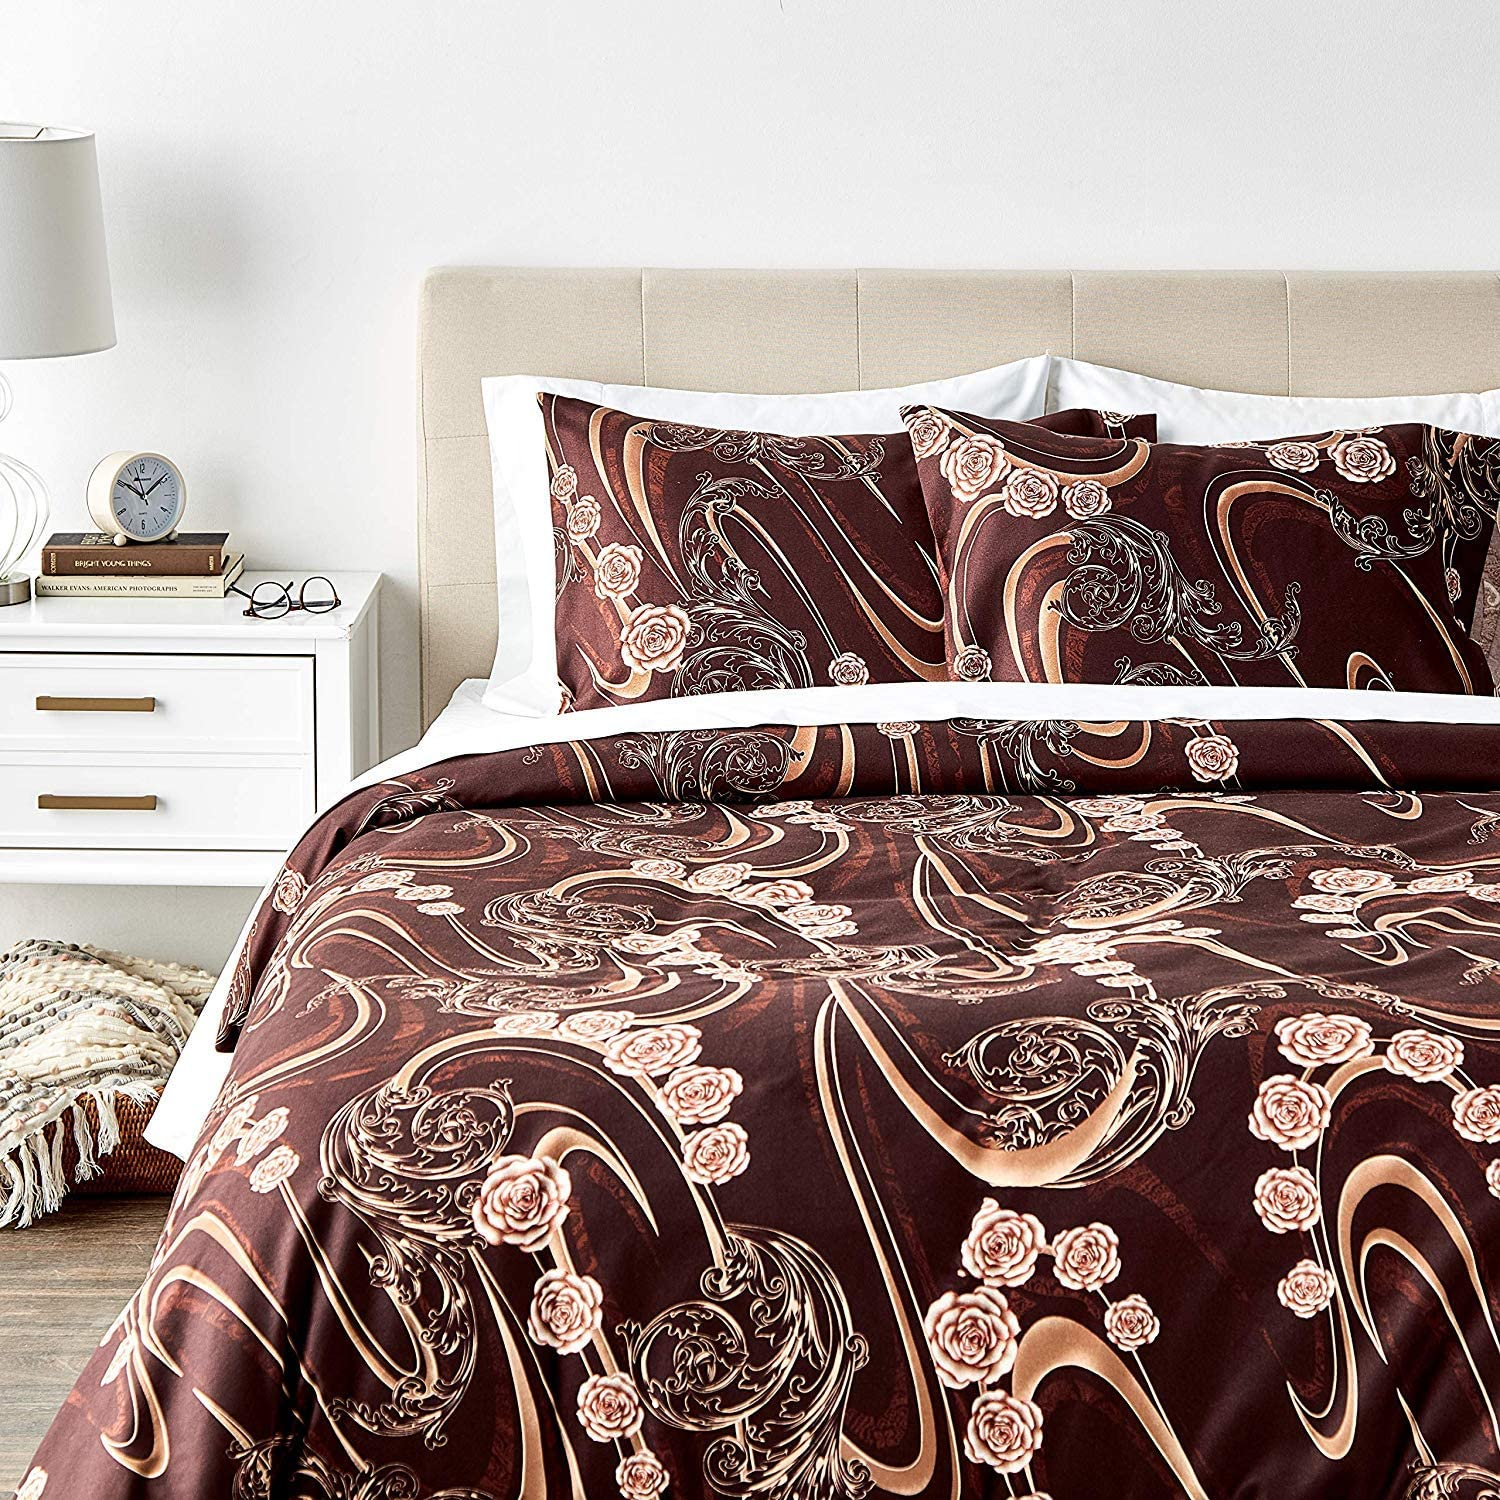 Tache Indianapolis Mall Home Fashion Melted Gold Duvet Floral Set Seasonal Wrap Introduction Cover Californi